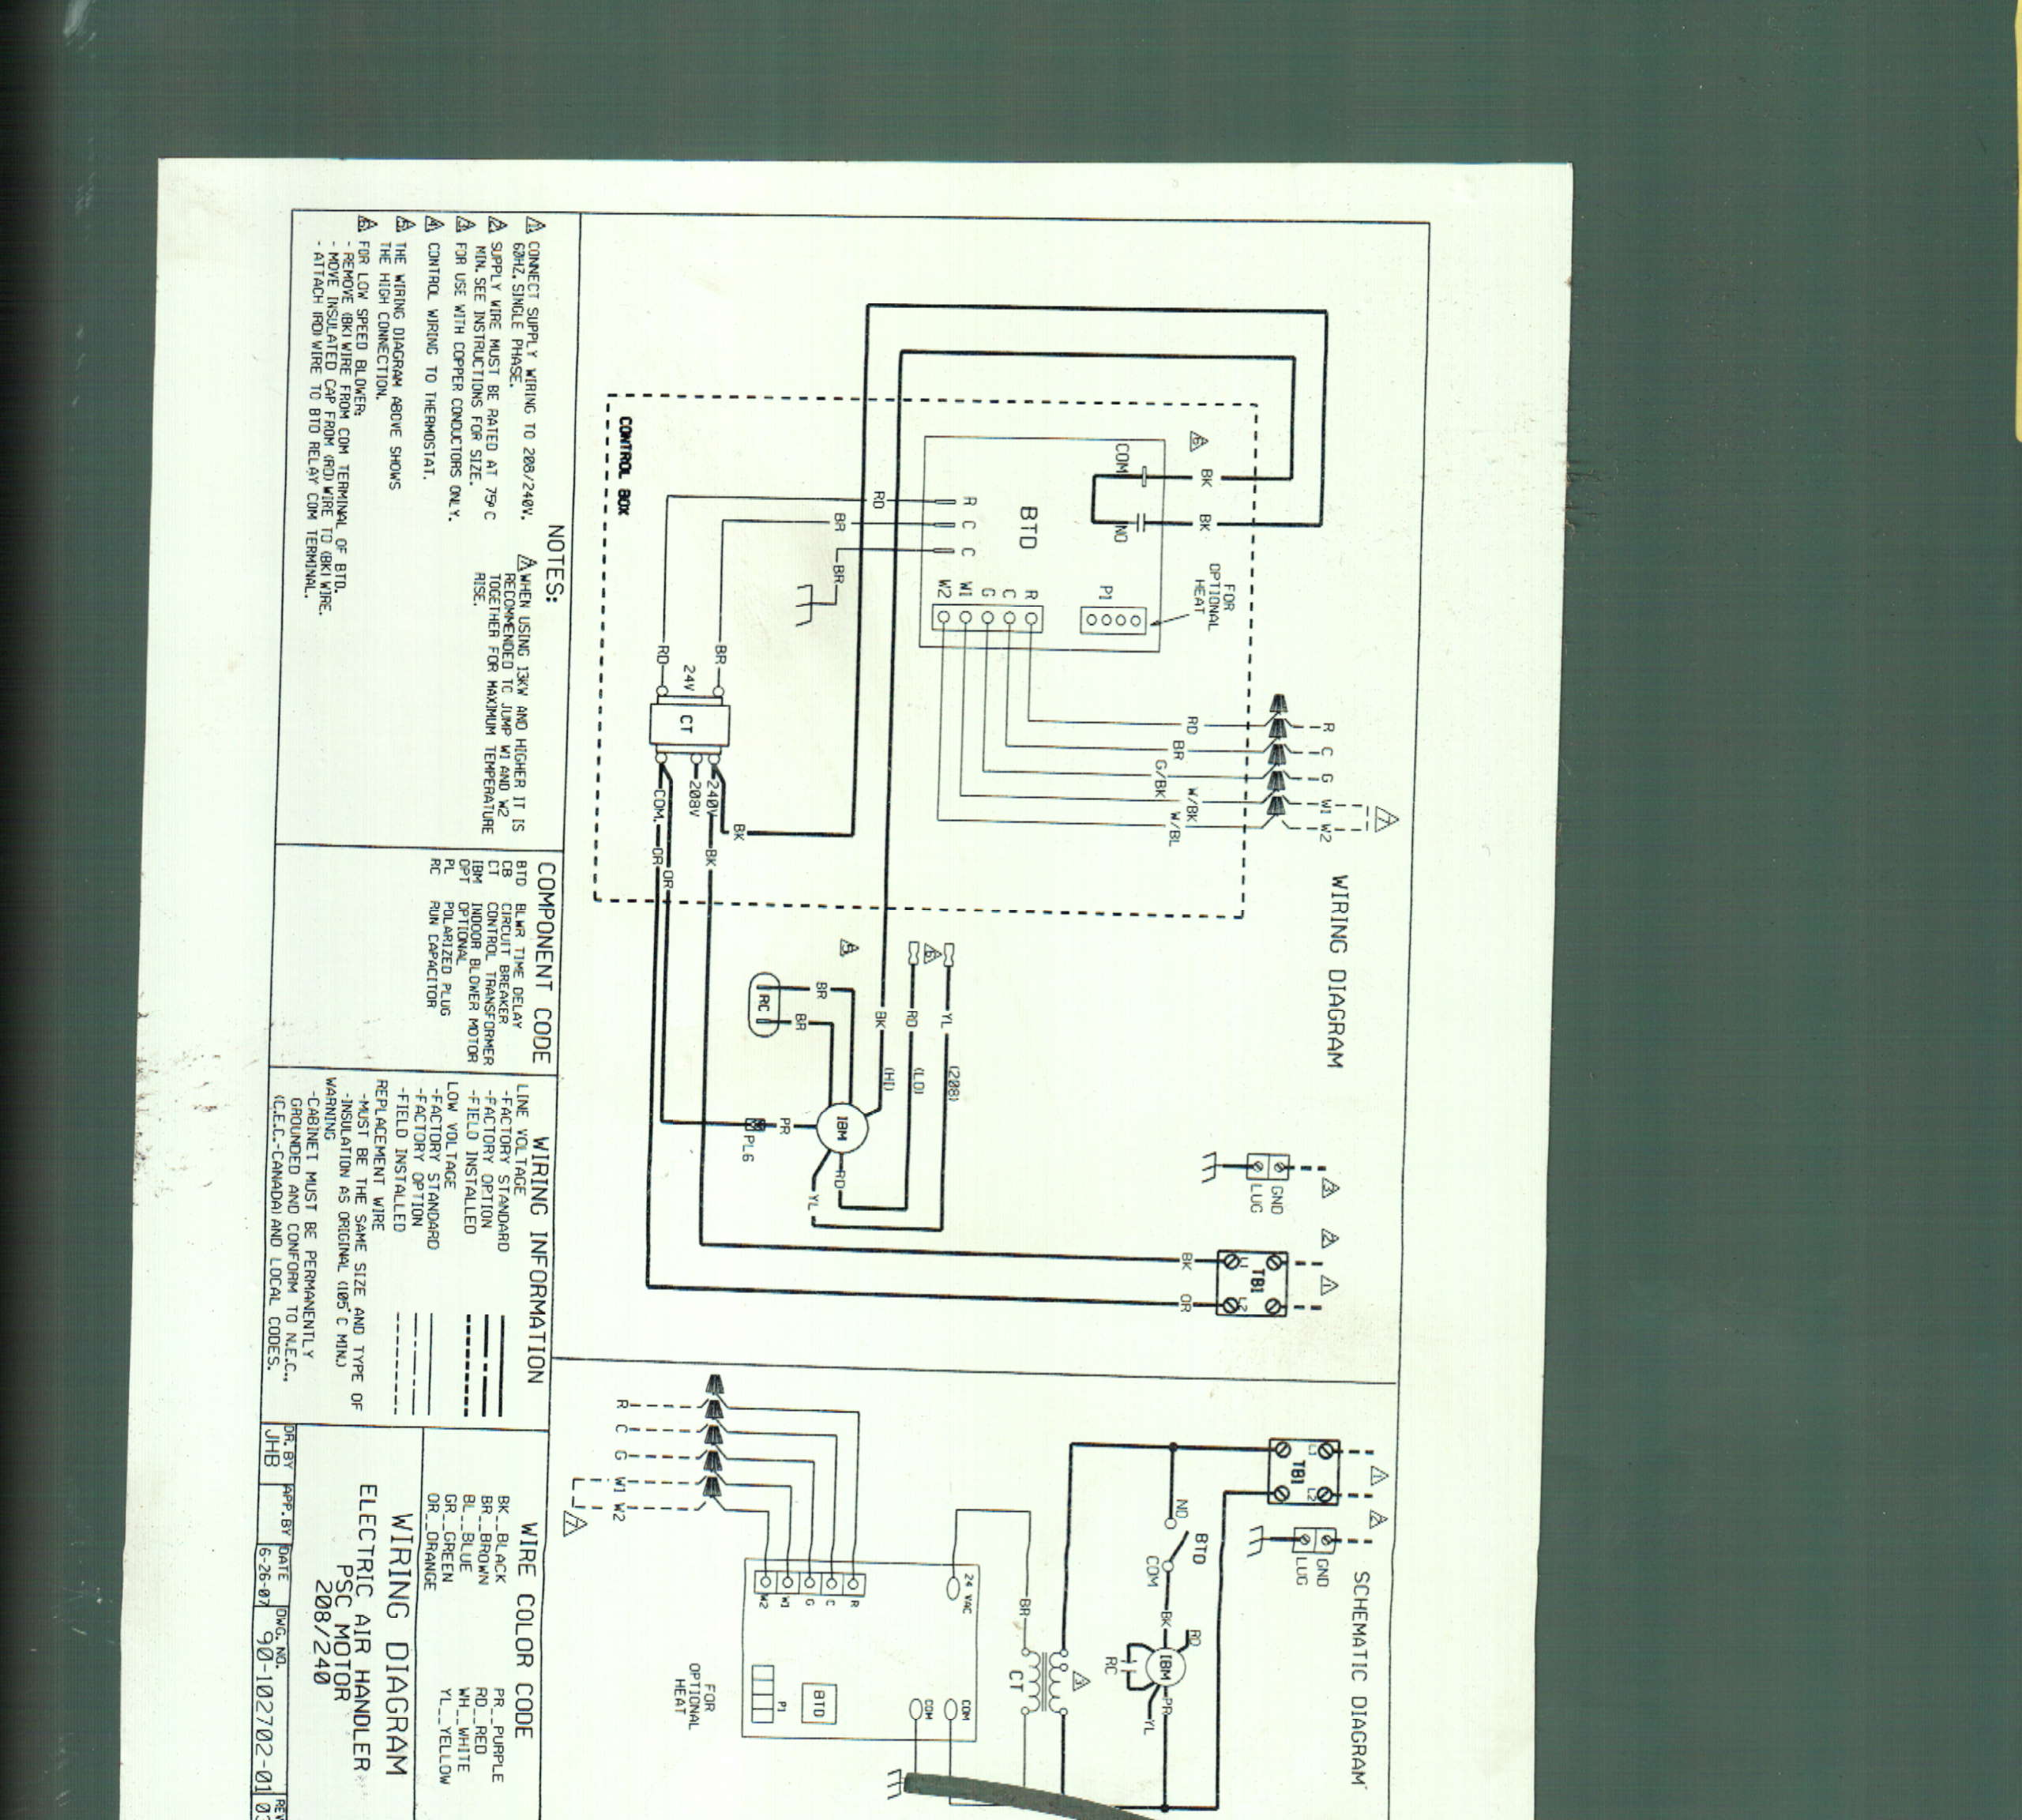 Wiring Diagram For Hunter 44155c Thermostat : Hunter thermostat wiring diagram